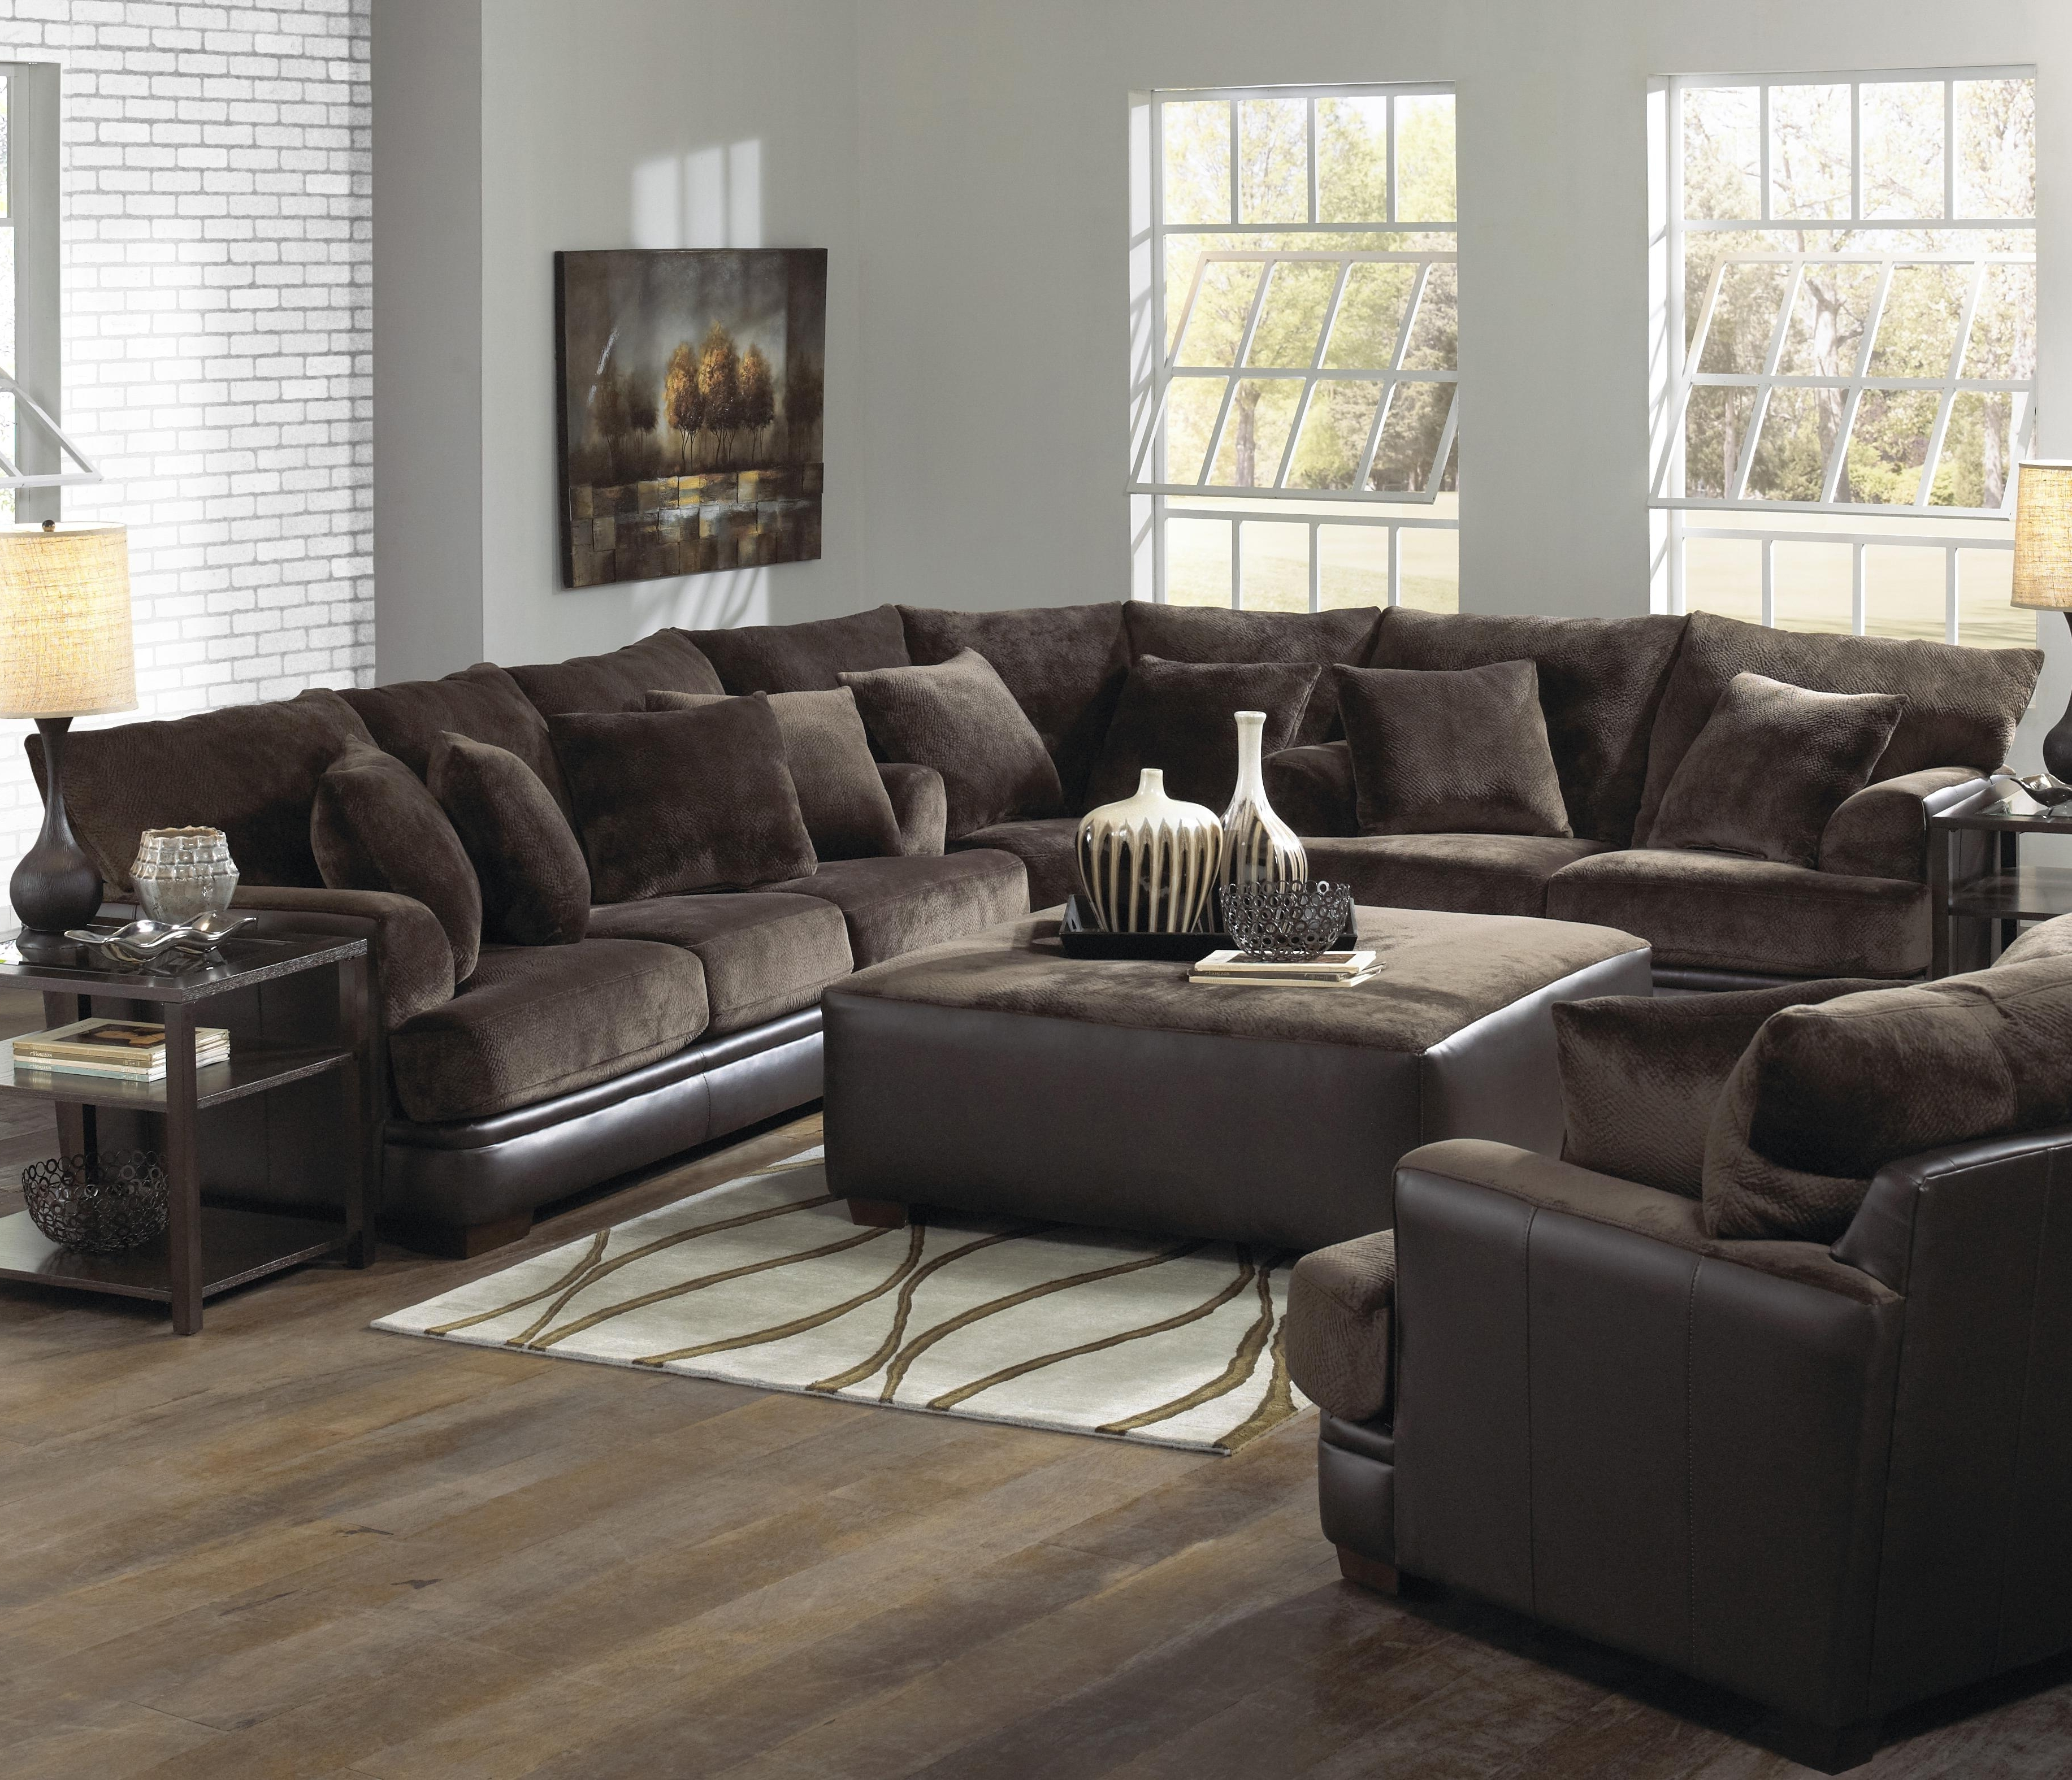 Favorite Furniture: Interesting Living Room Interior Using Large Sectional With Extra Large U Shaped Sectionals (View 9 of 15)